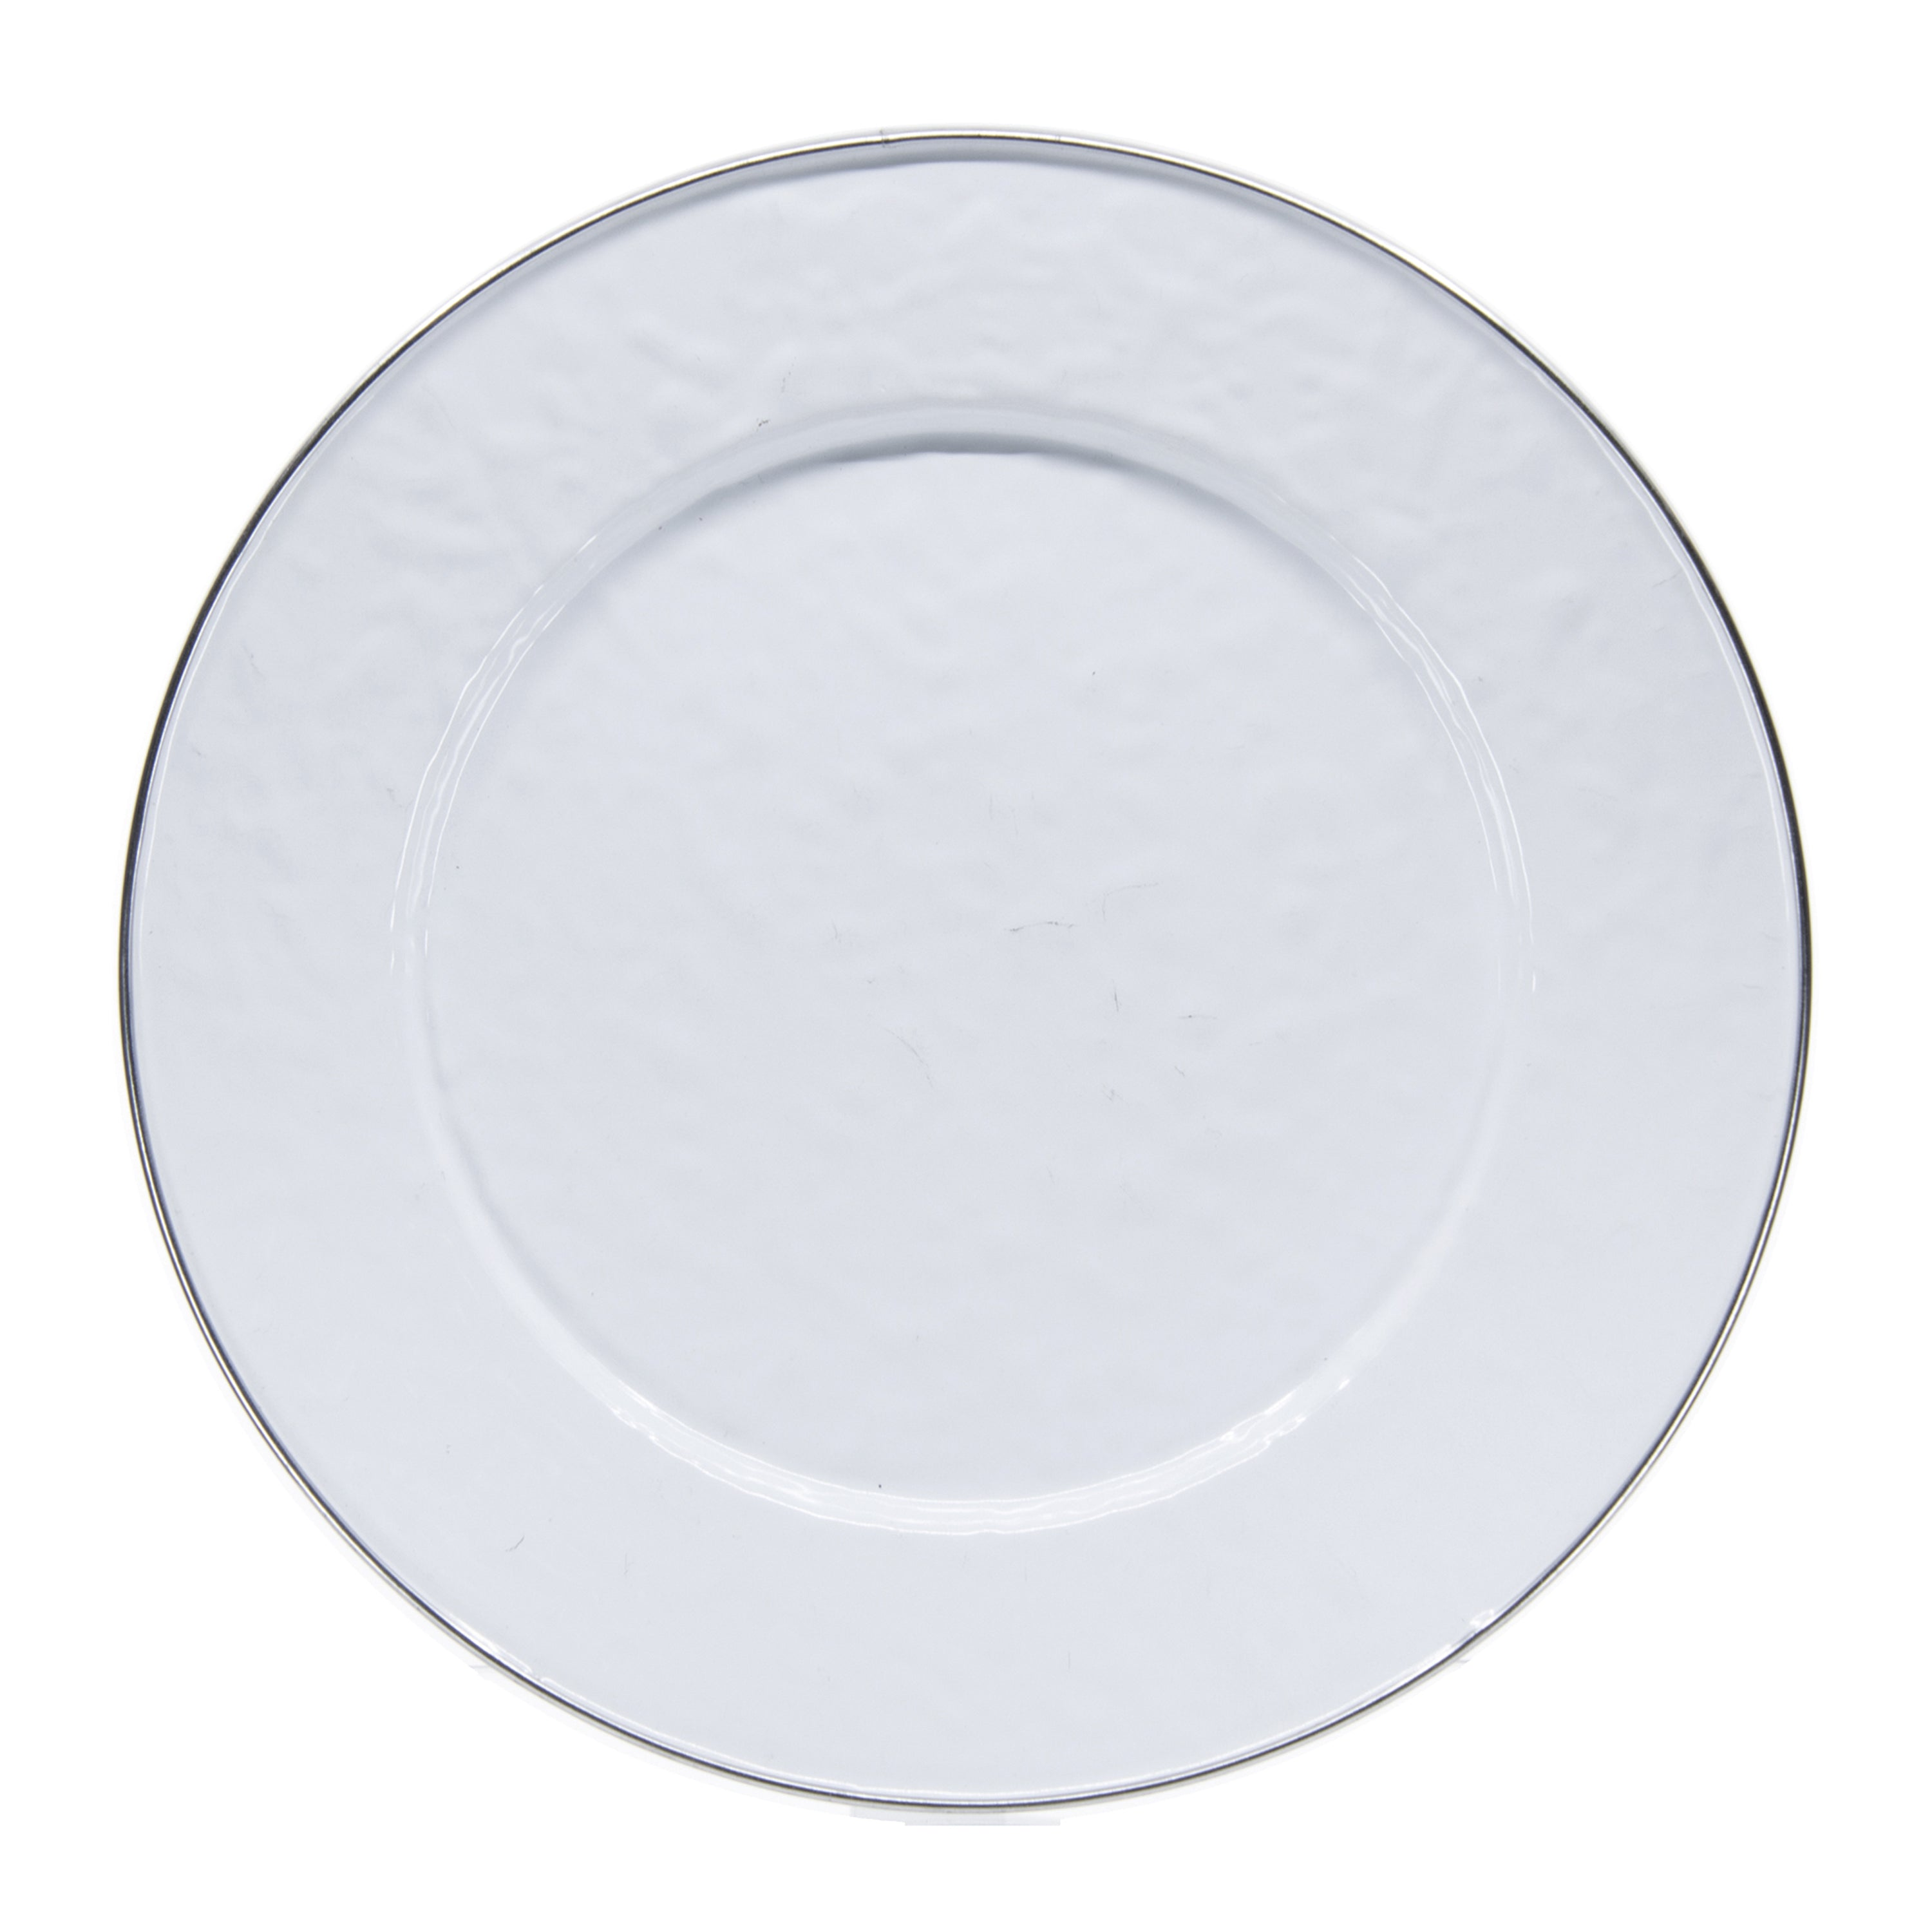 WW07S4 - Set of 4 Solid White Dinner Plates Image 2